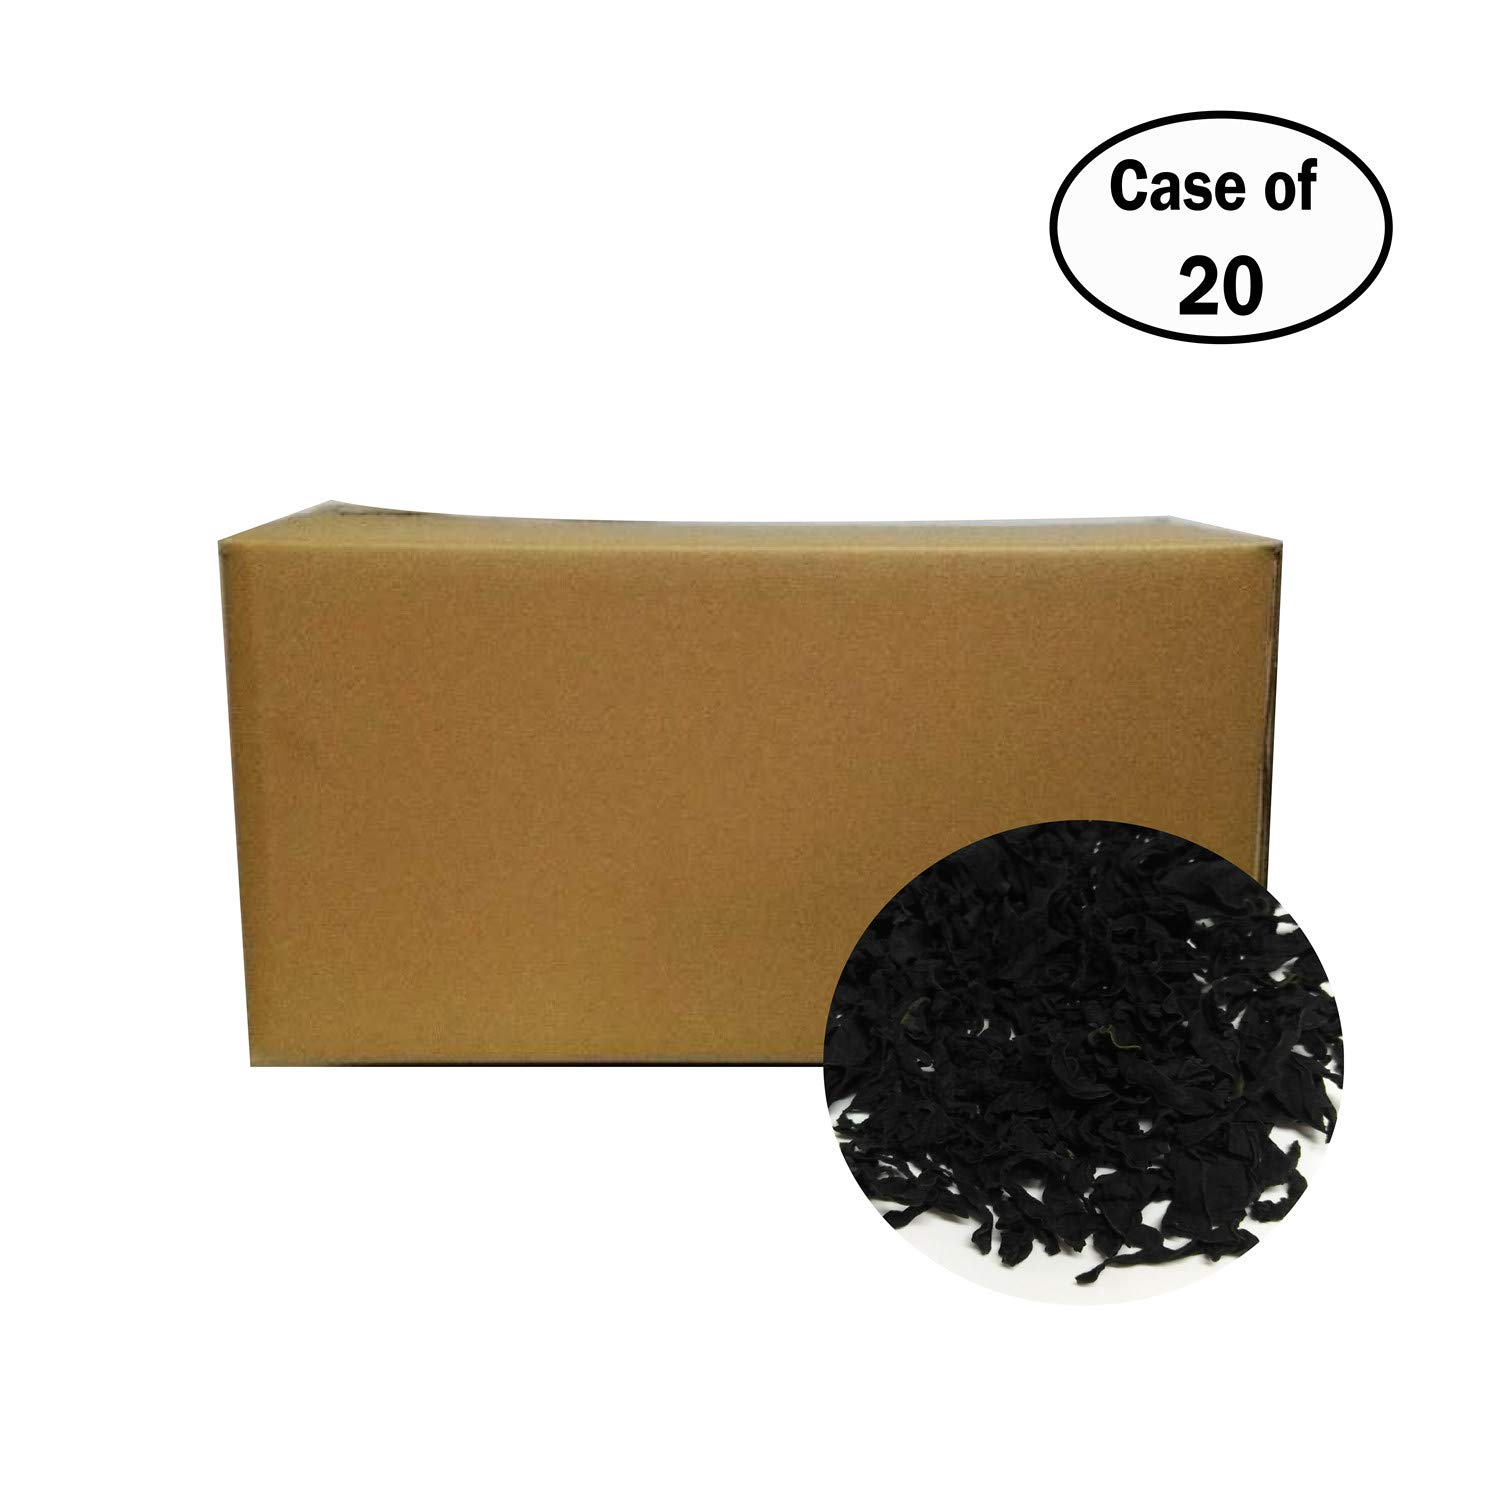 case of 20 packs, 10kg/pack, dried wakame cut, dried sea vegetable